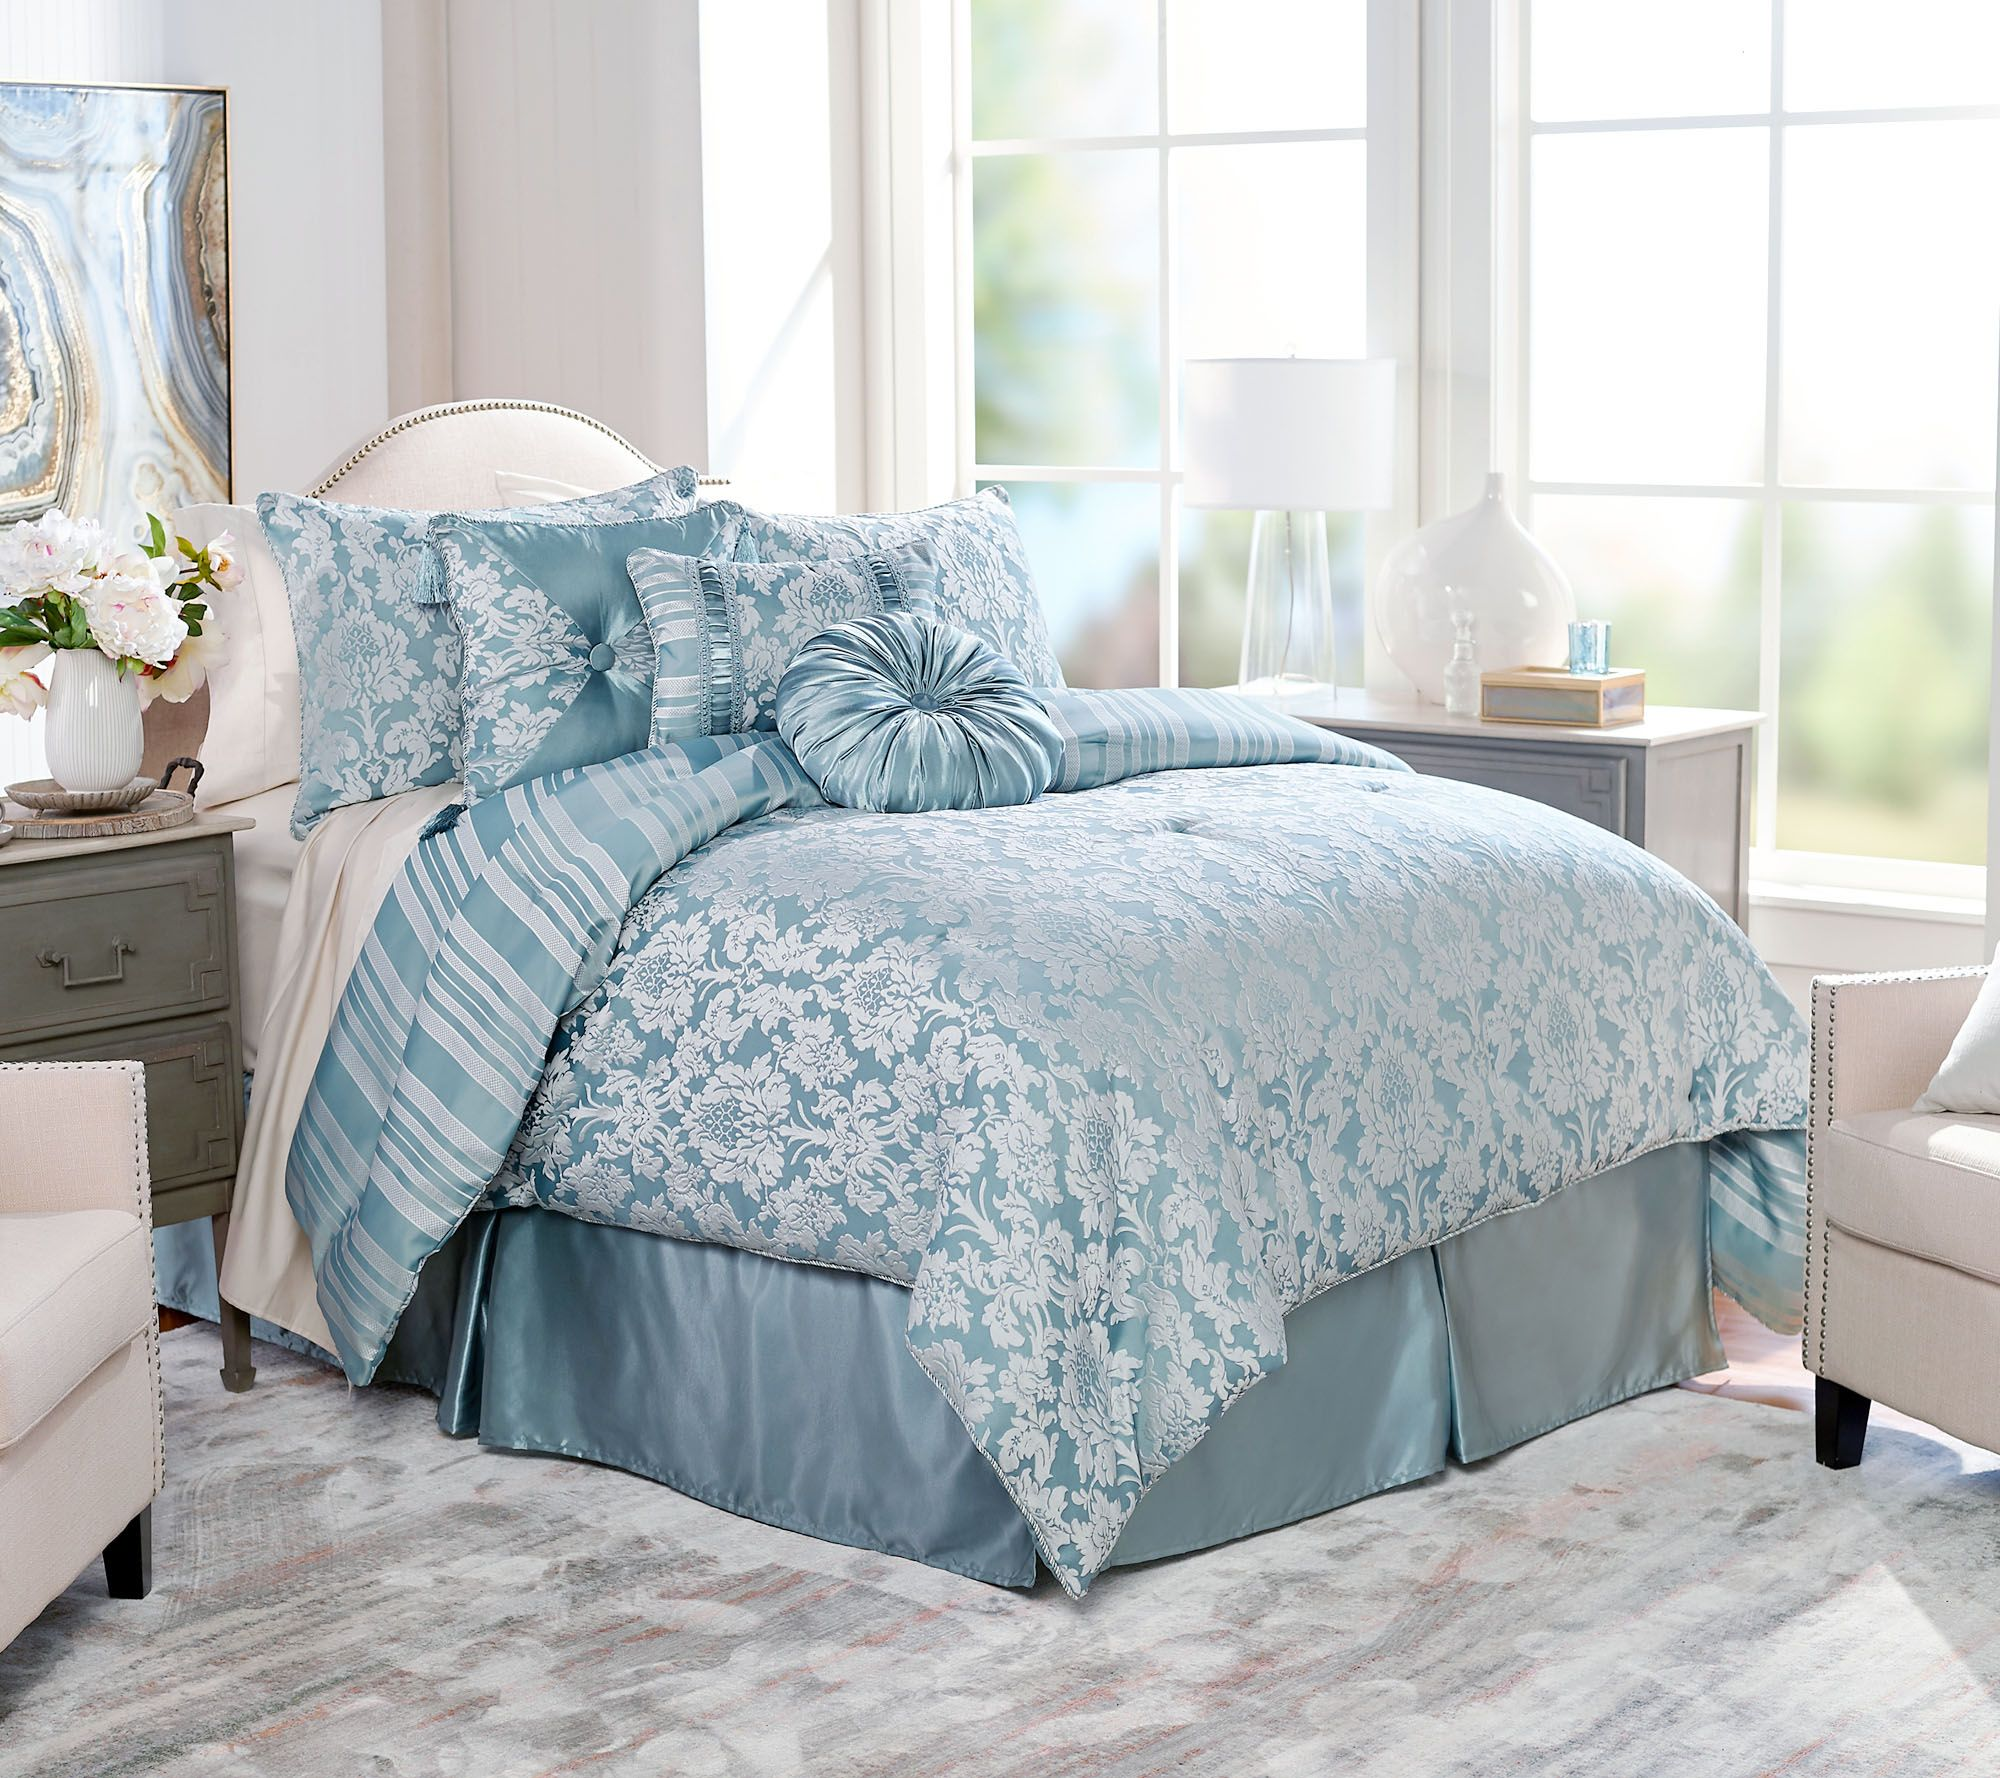 qvc bedroom sets northern nights jacquard reversible 6 comforter 13033